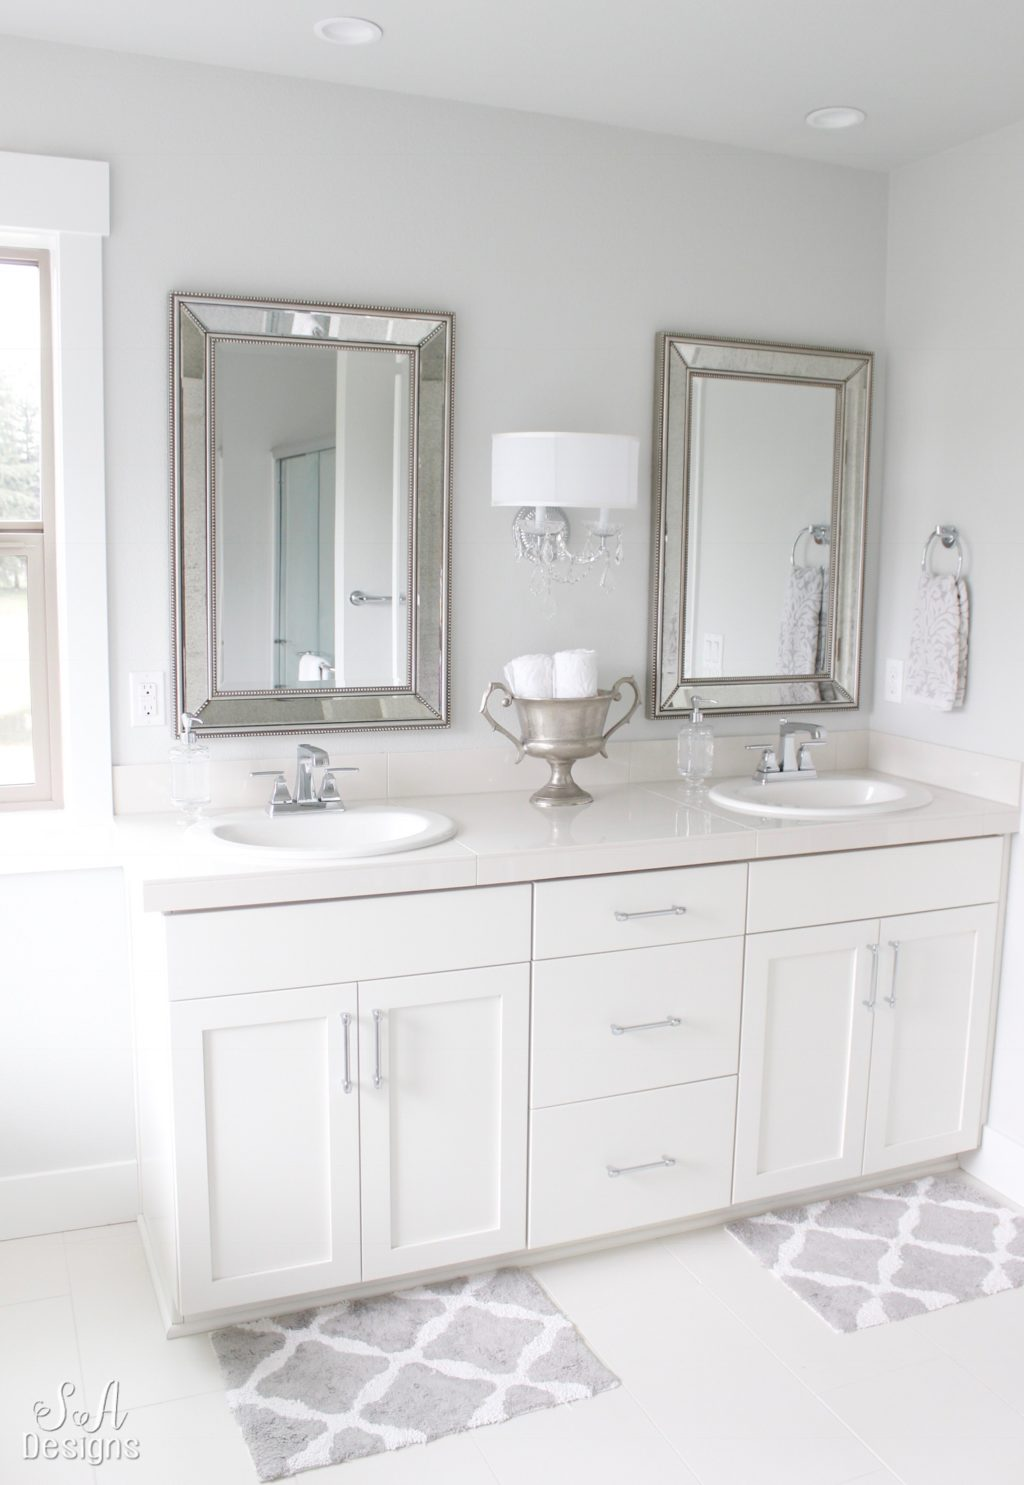 ... We Chose The White Tile For The Floor And A Shinier Version For The  Counter Tops, For Now. We Will Probably Change That Down The Road When I  Know What I ...